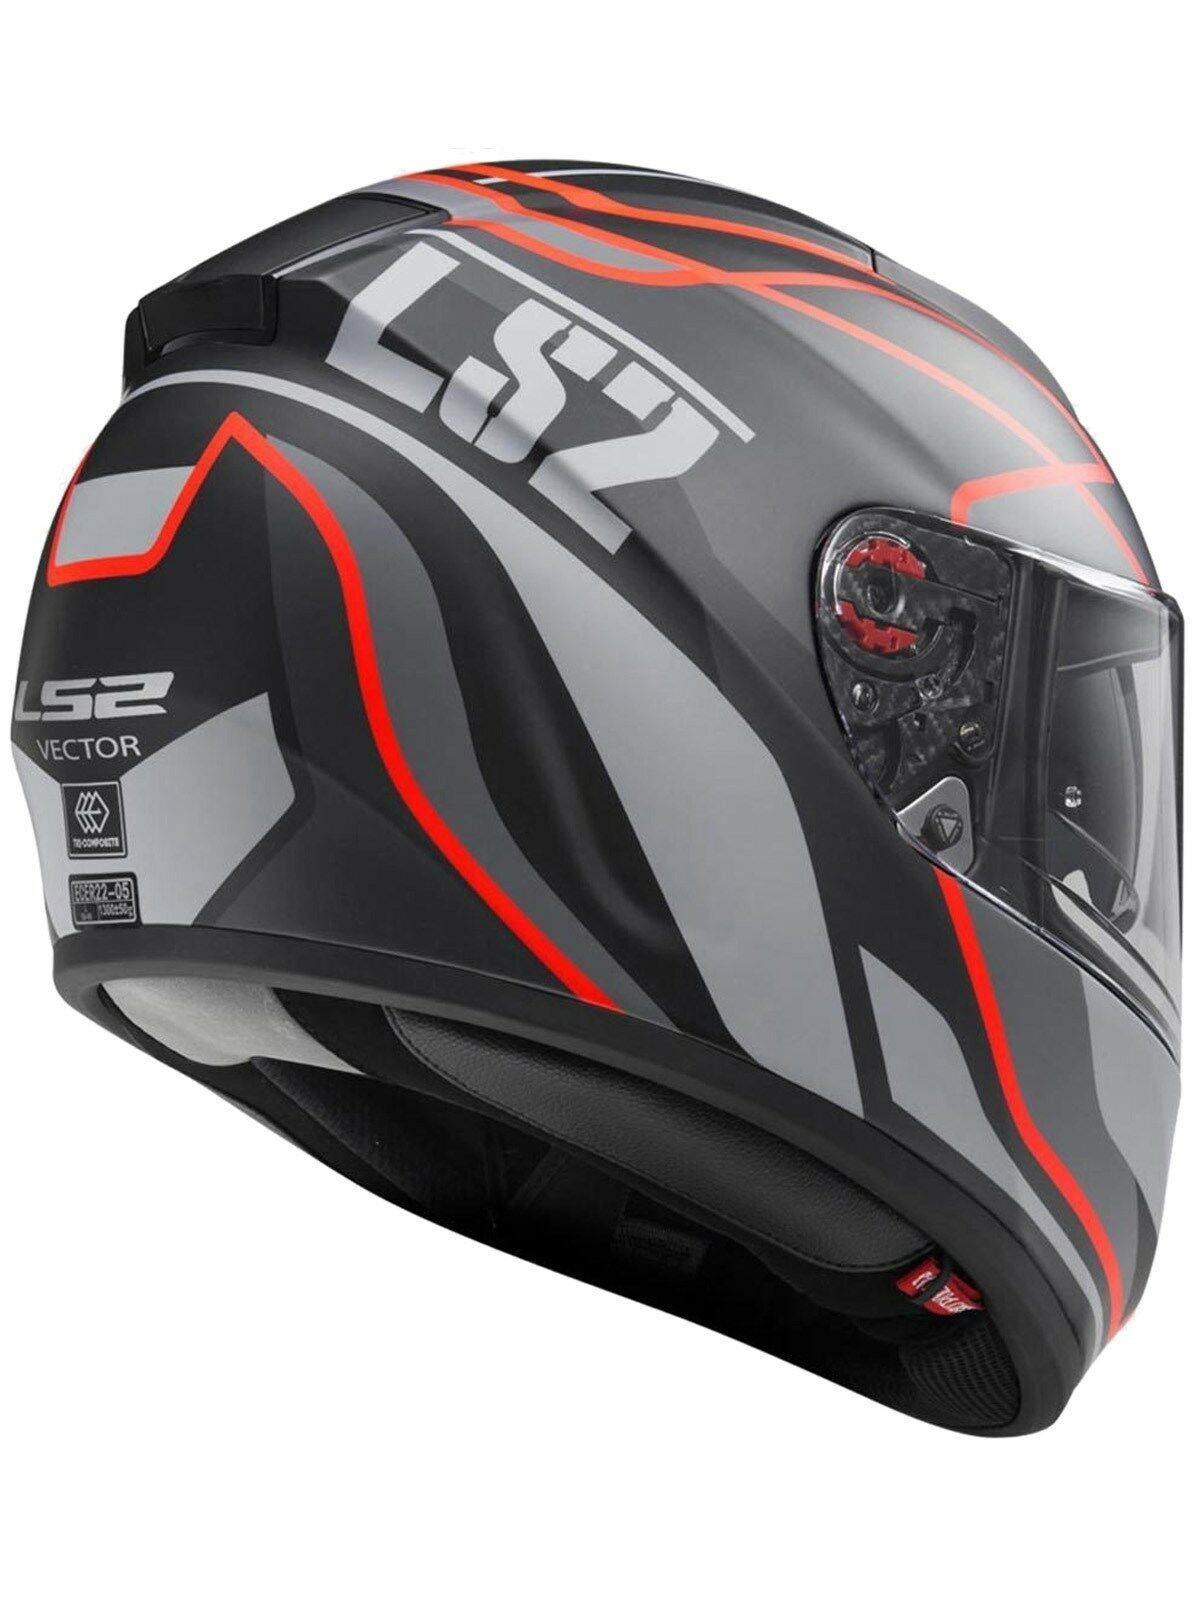 Helmet LS2 397 VECTOR (VANTAGE Matt Black Red)